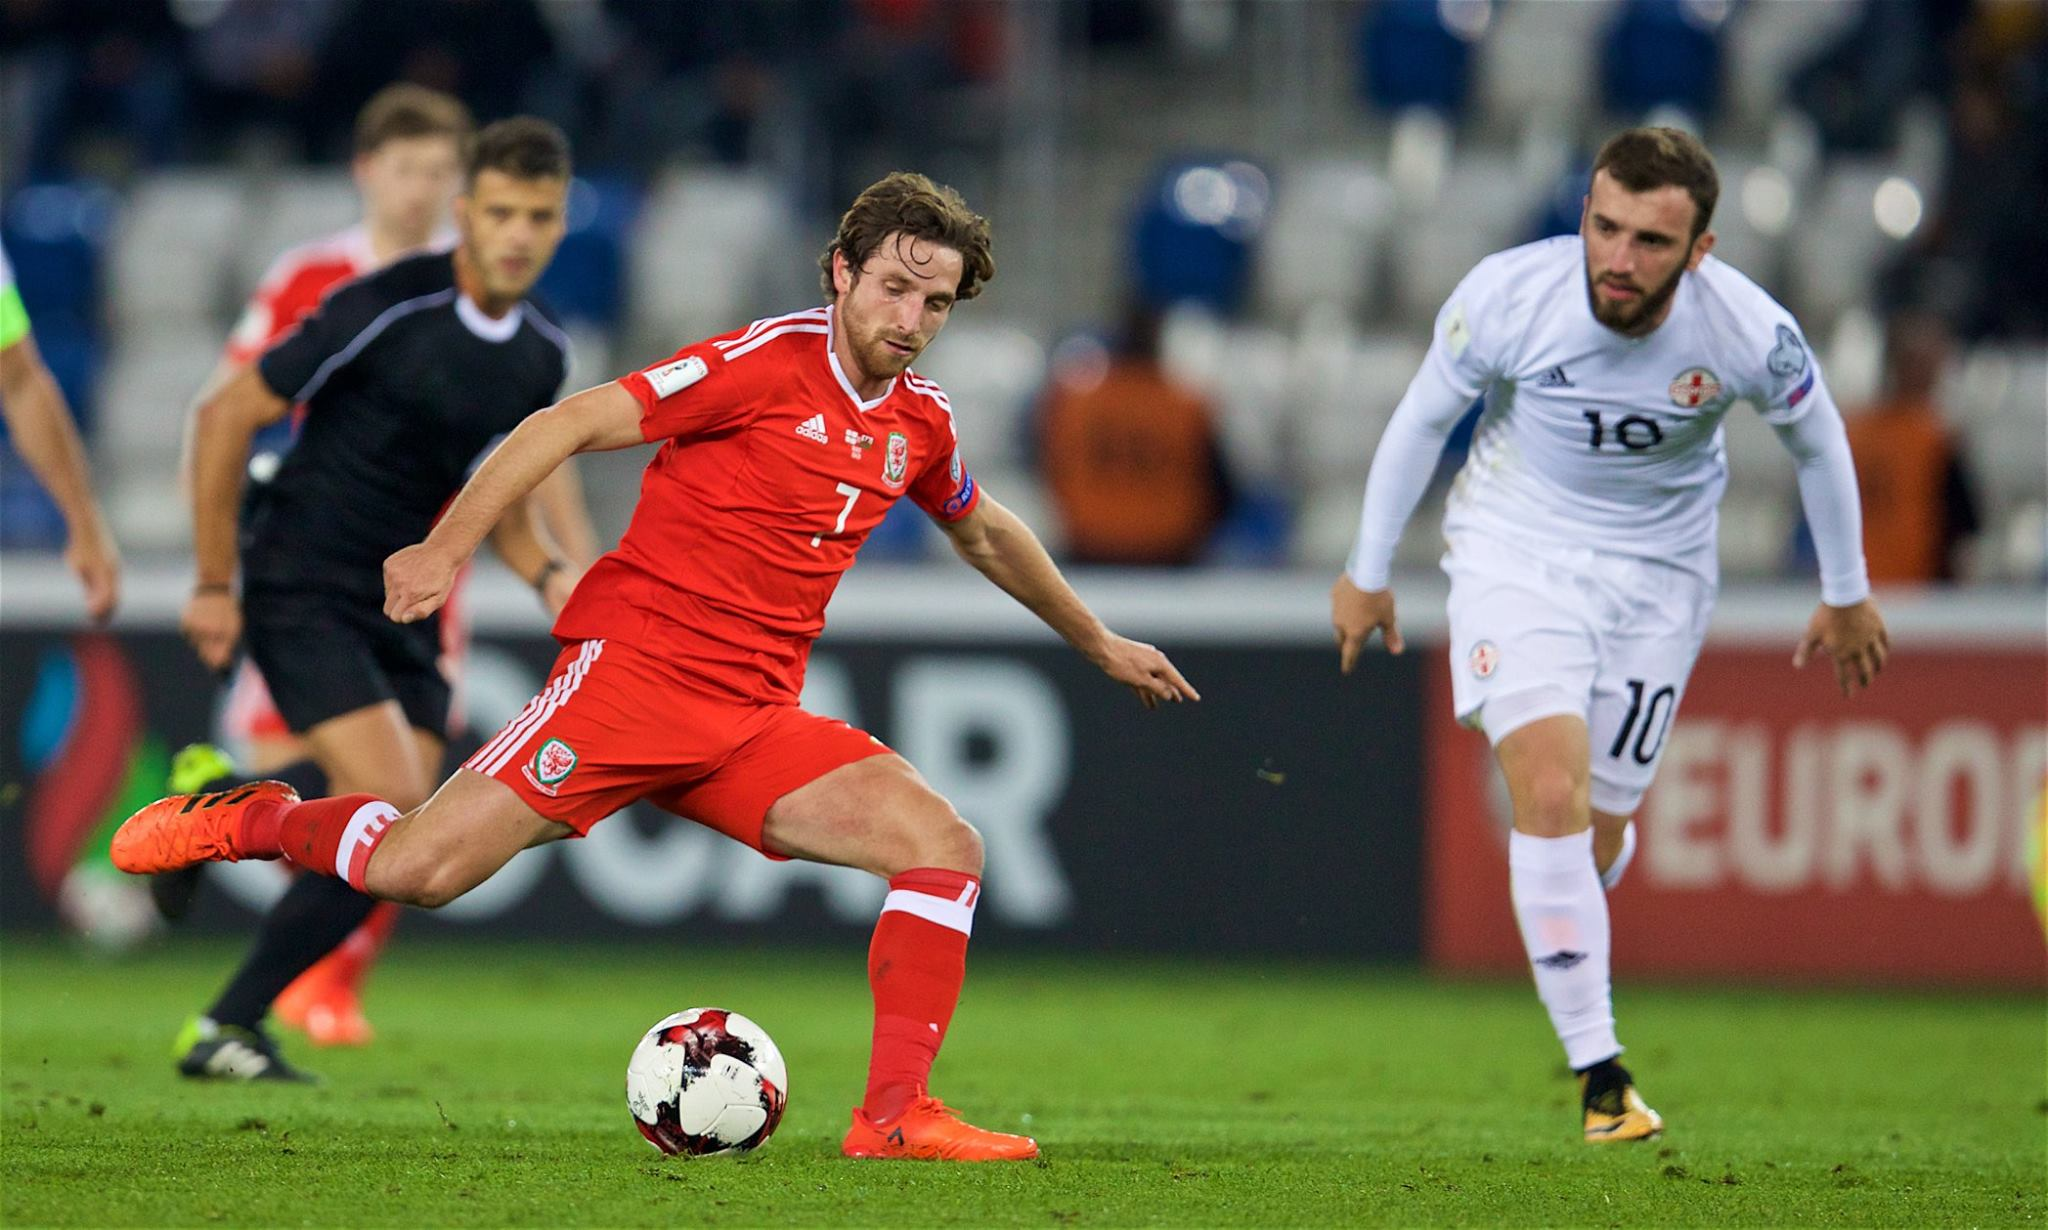 Joe Allen's physical profile is very different to that of Gareth Bale